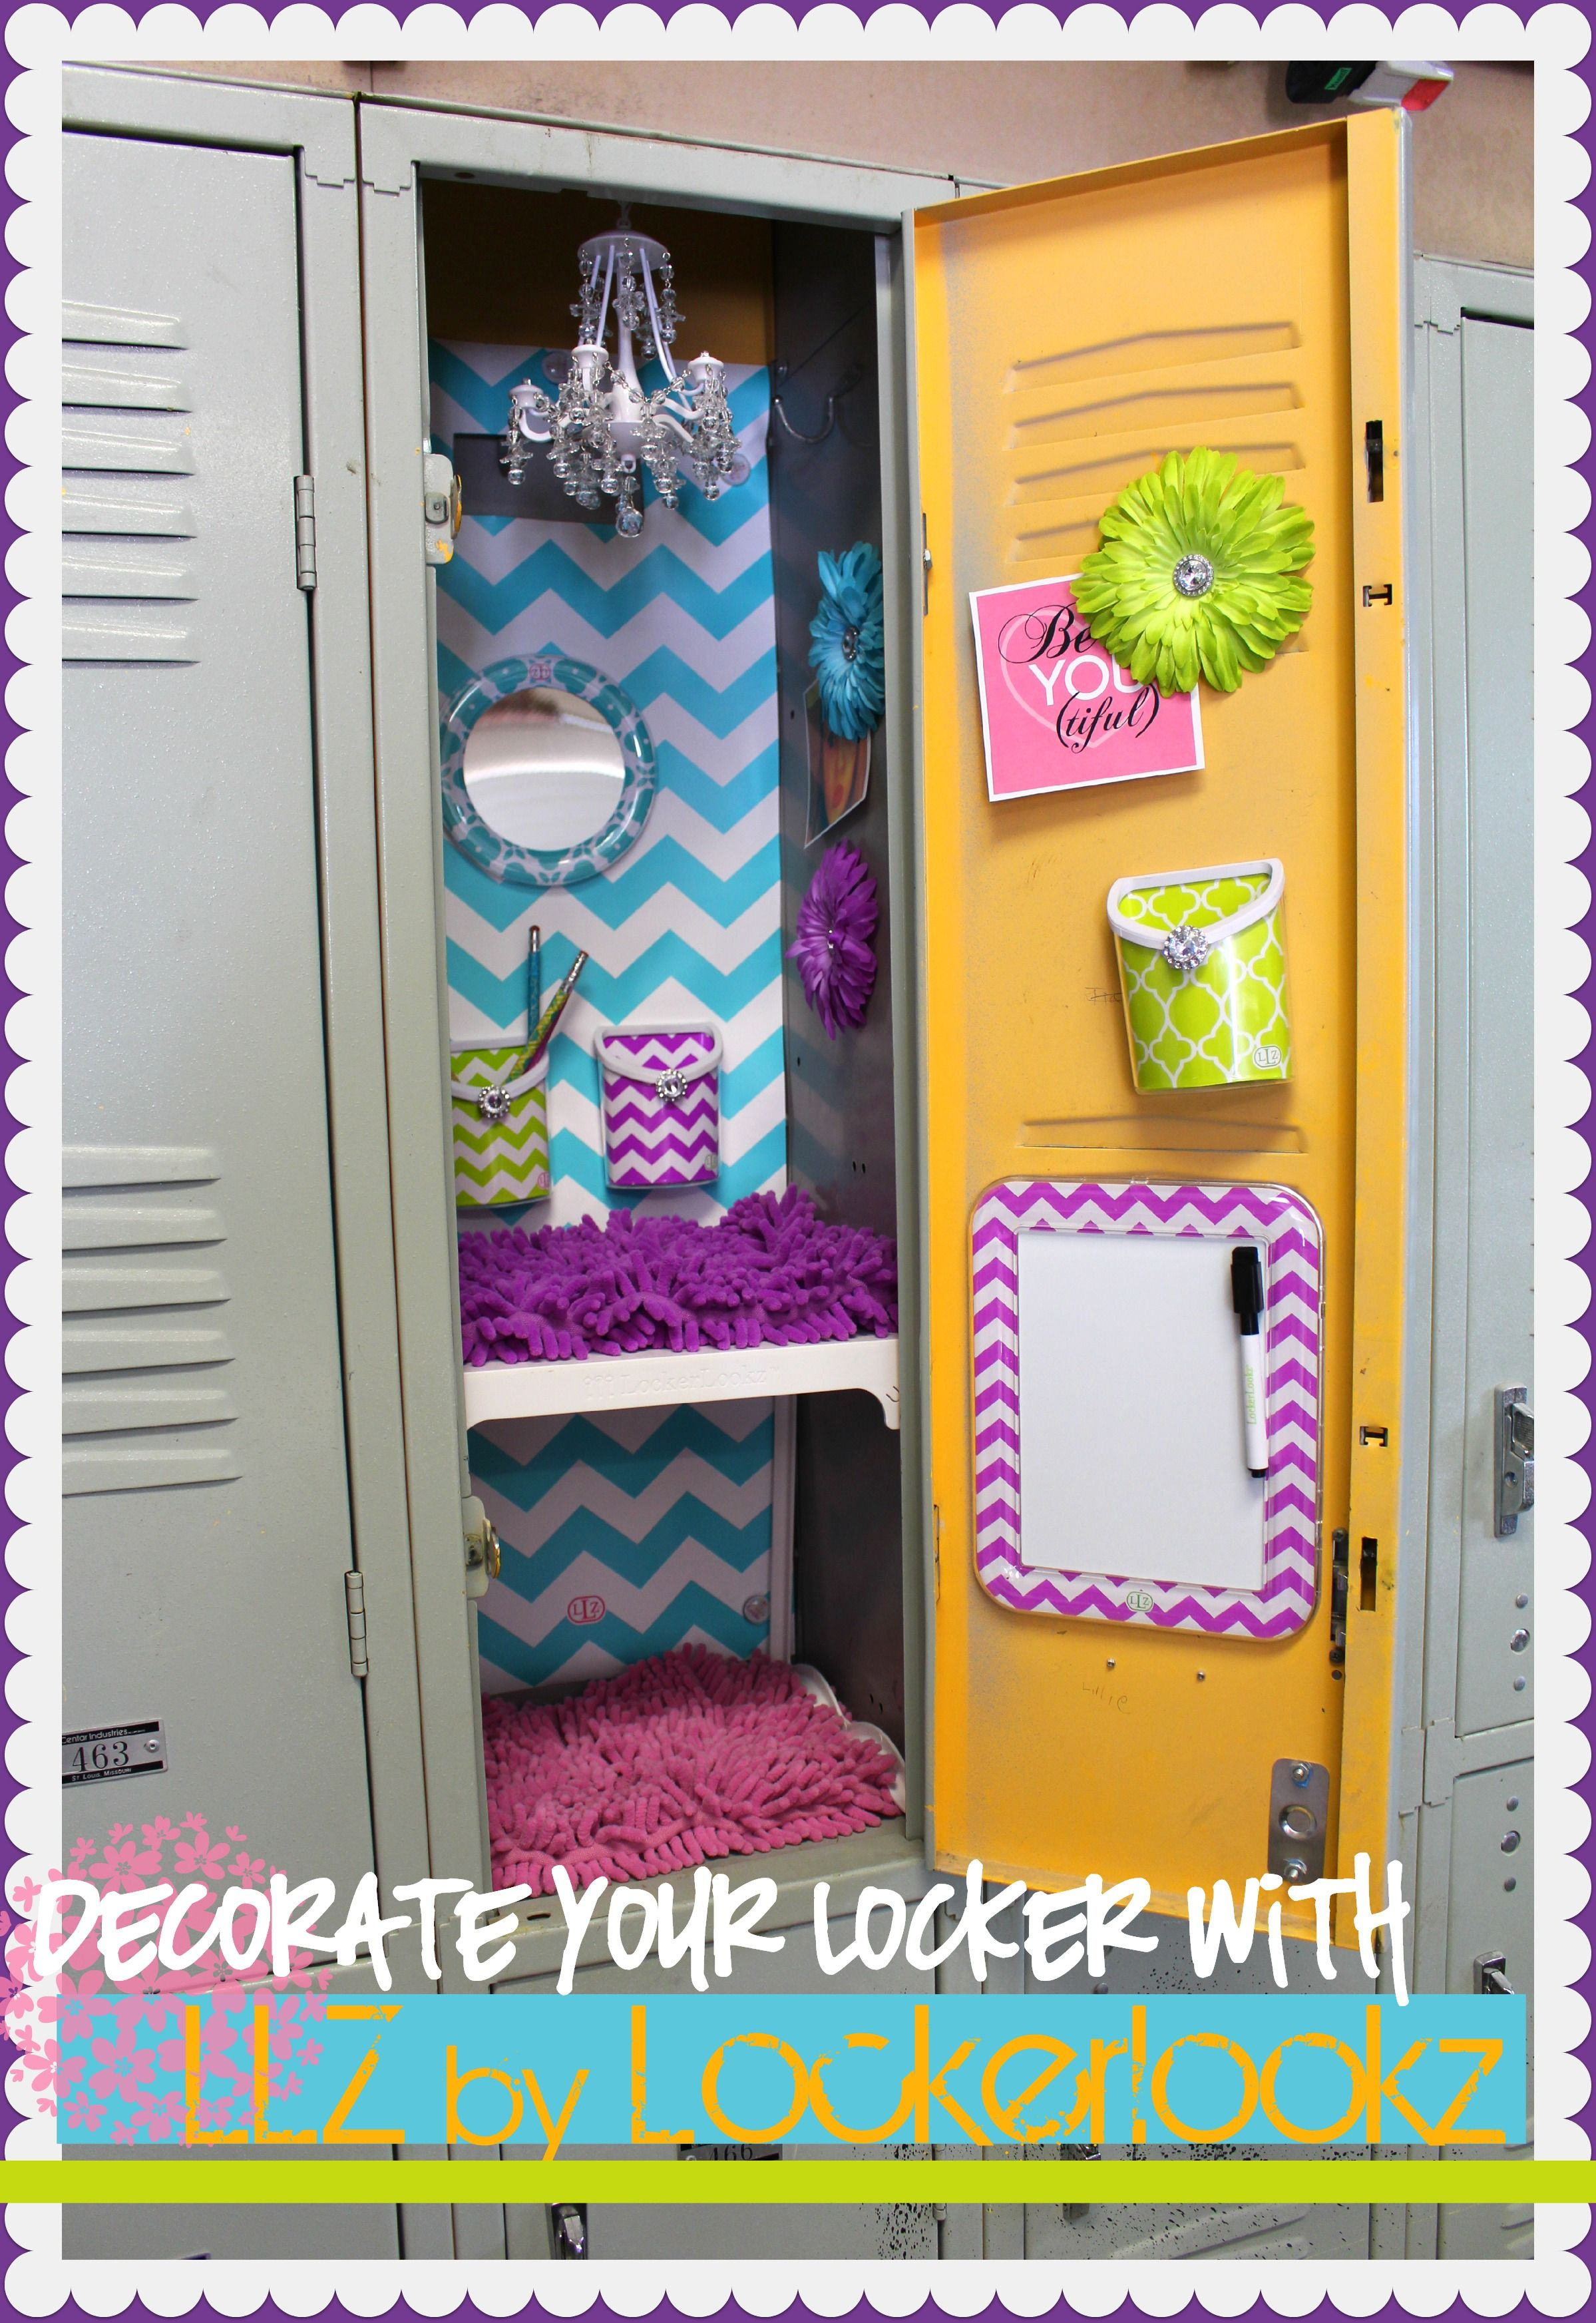 Superb Decorate Your Locker With Llzlockerlookz | Lockers, Locker